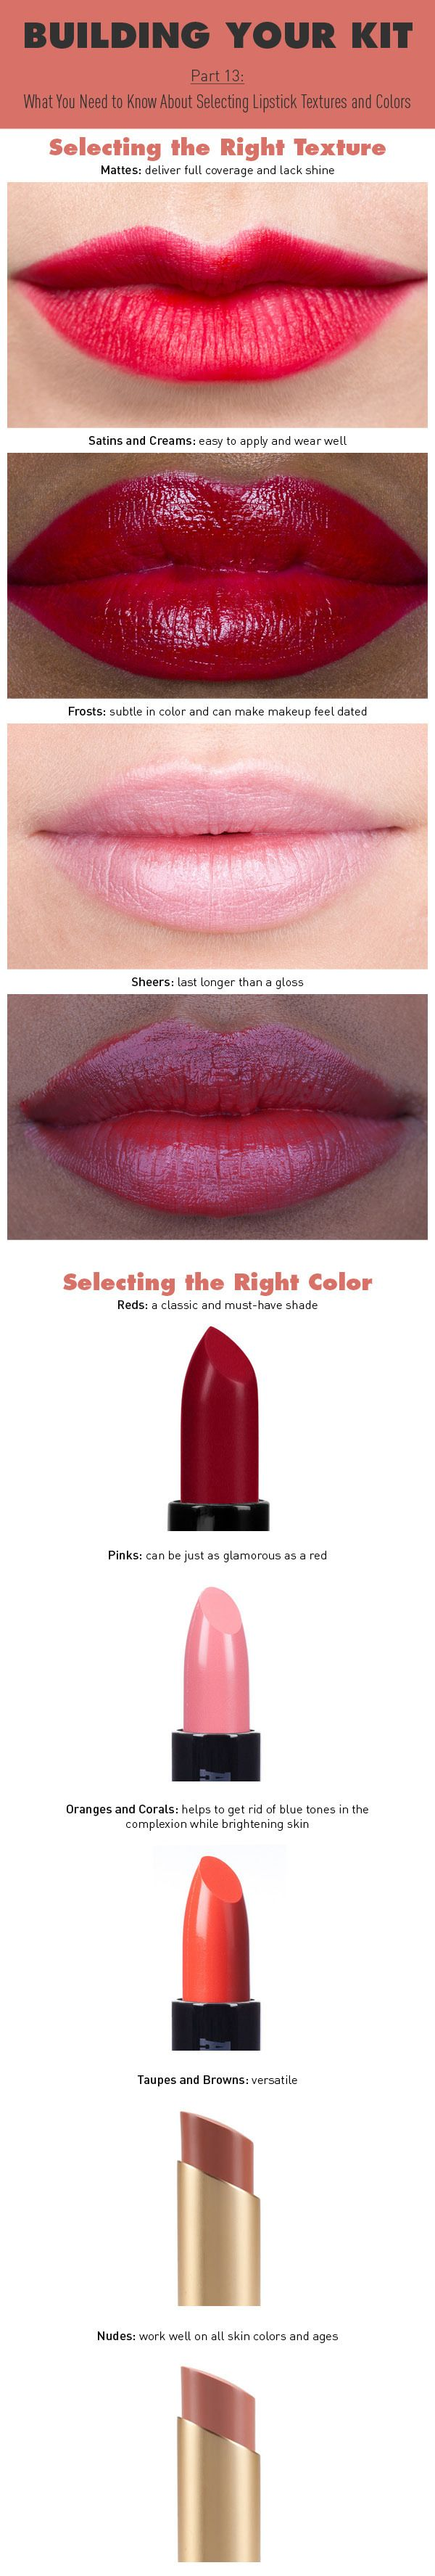 Building Your Kit Part 13: How To Create the Perfect Lipstick Collection